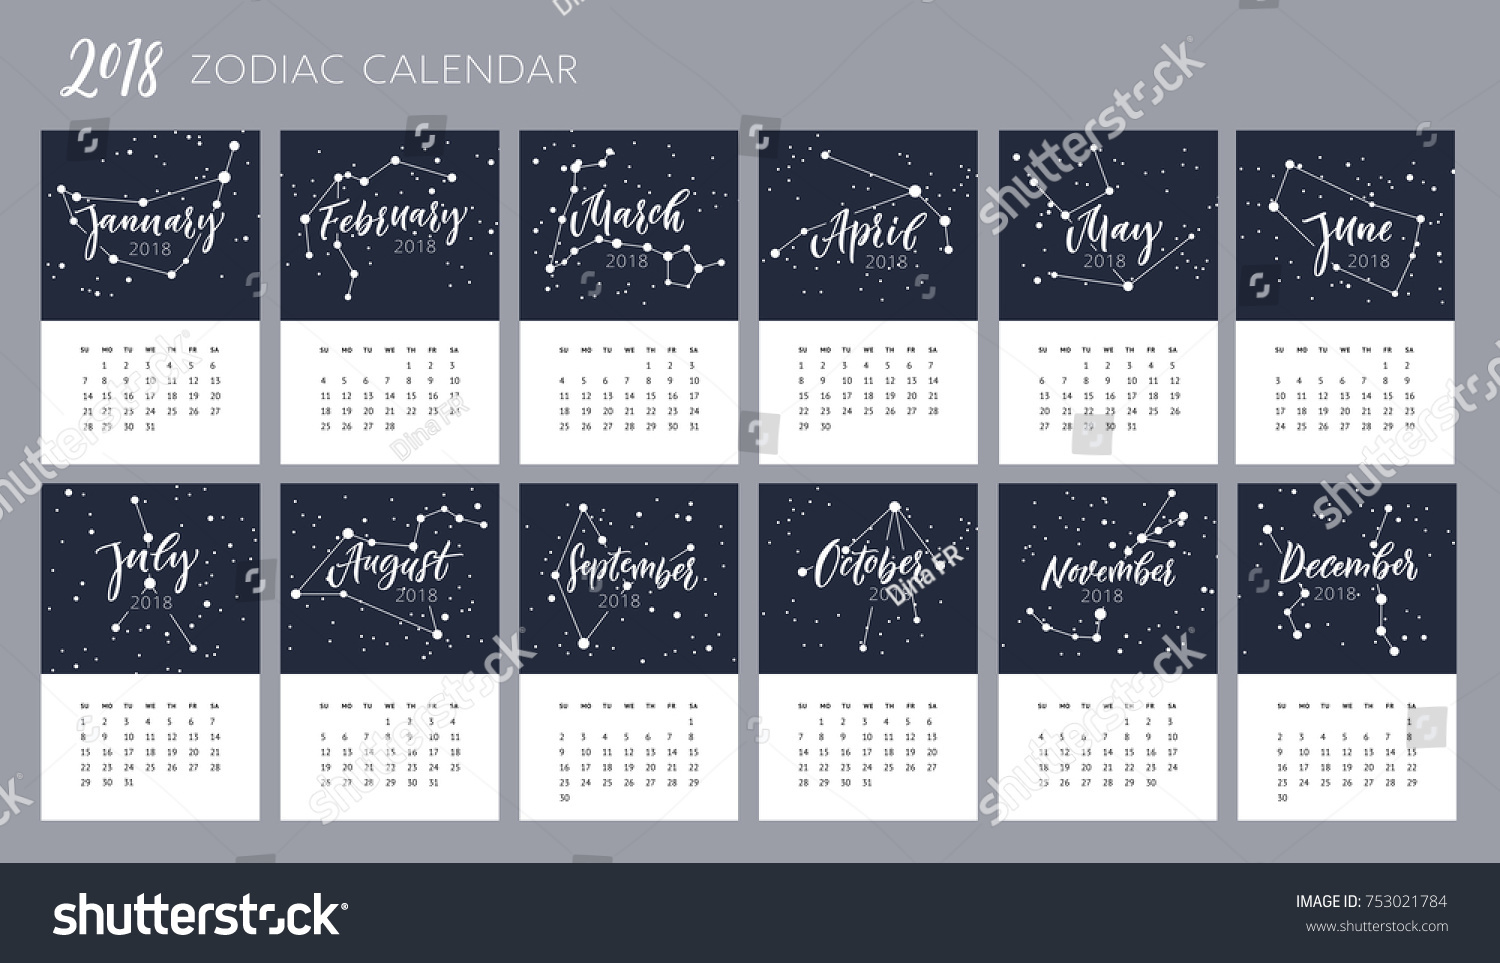 Calendar Design Zodiac : Months names brush lettering constellations zodiac stock